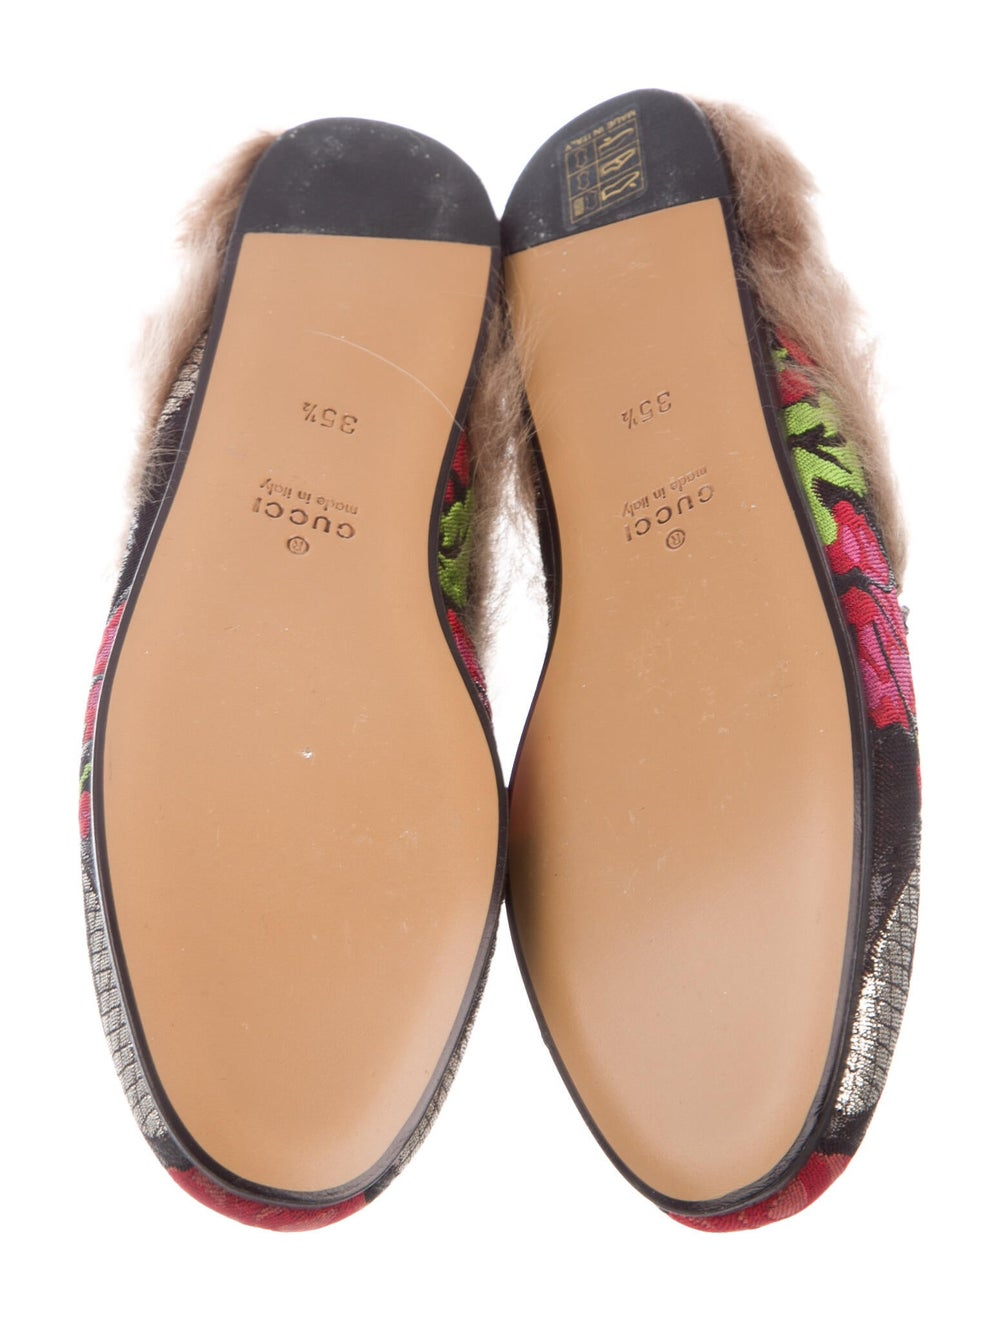 Gucci Princetown Floral Print Mules Black - image 5